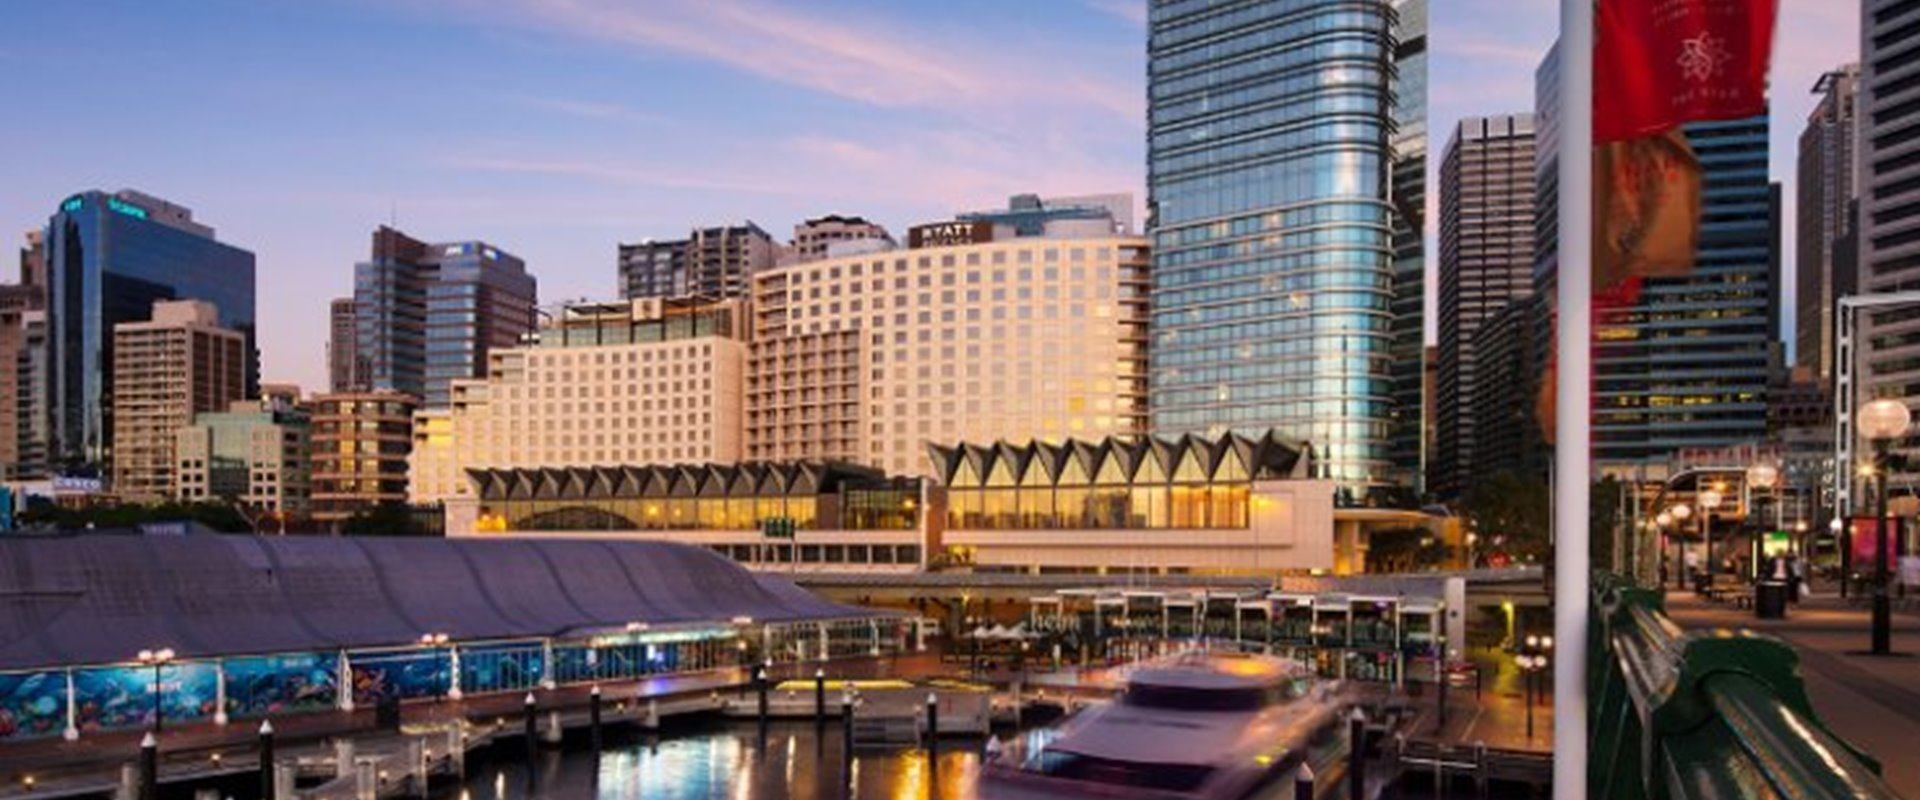 Hyatt Regency Sydney | Conference Venues Sydney | Conference Venues New South Wales